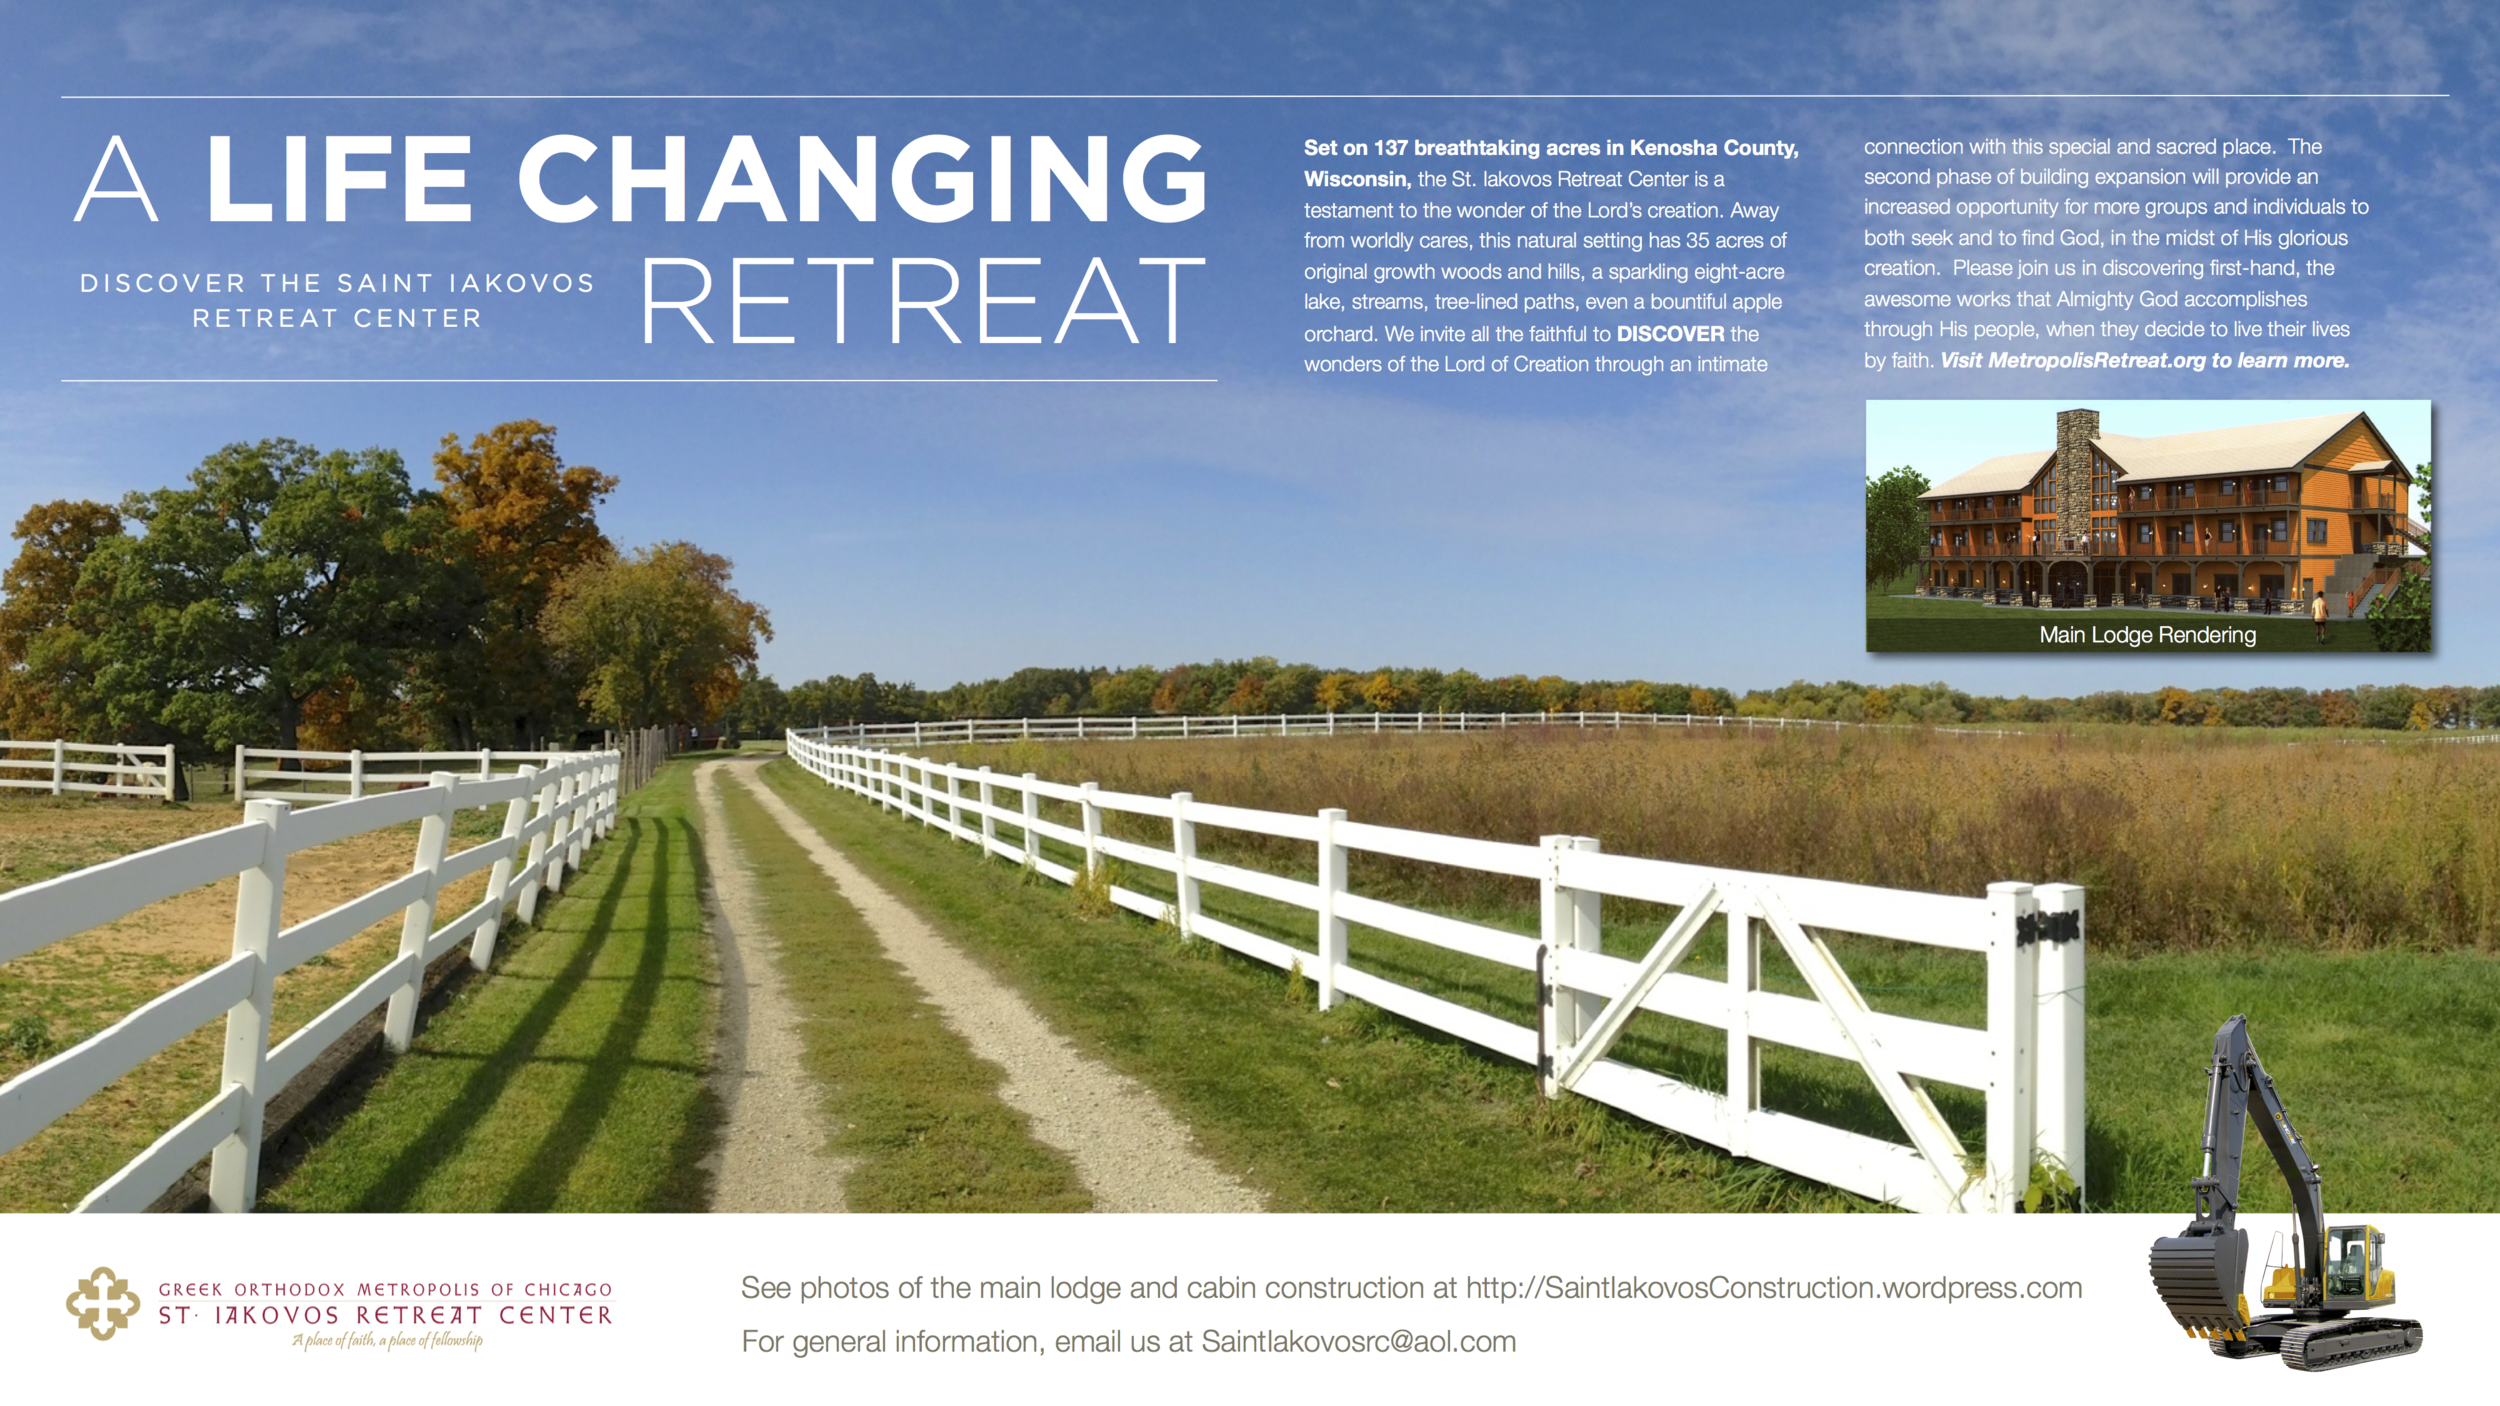 2010 SIRC Life Changing Retreat Poster